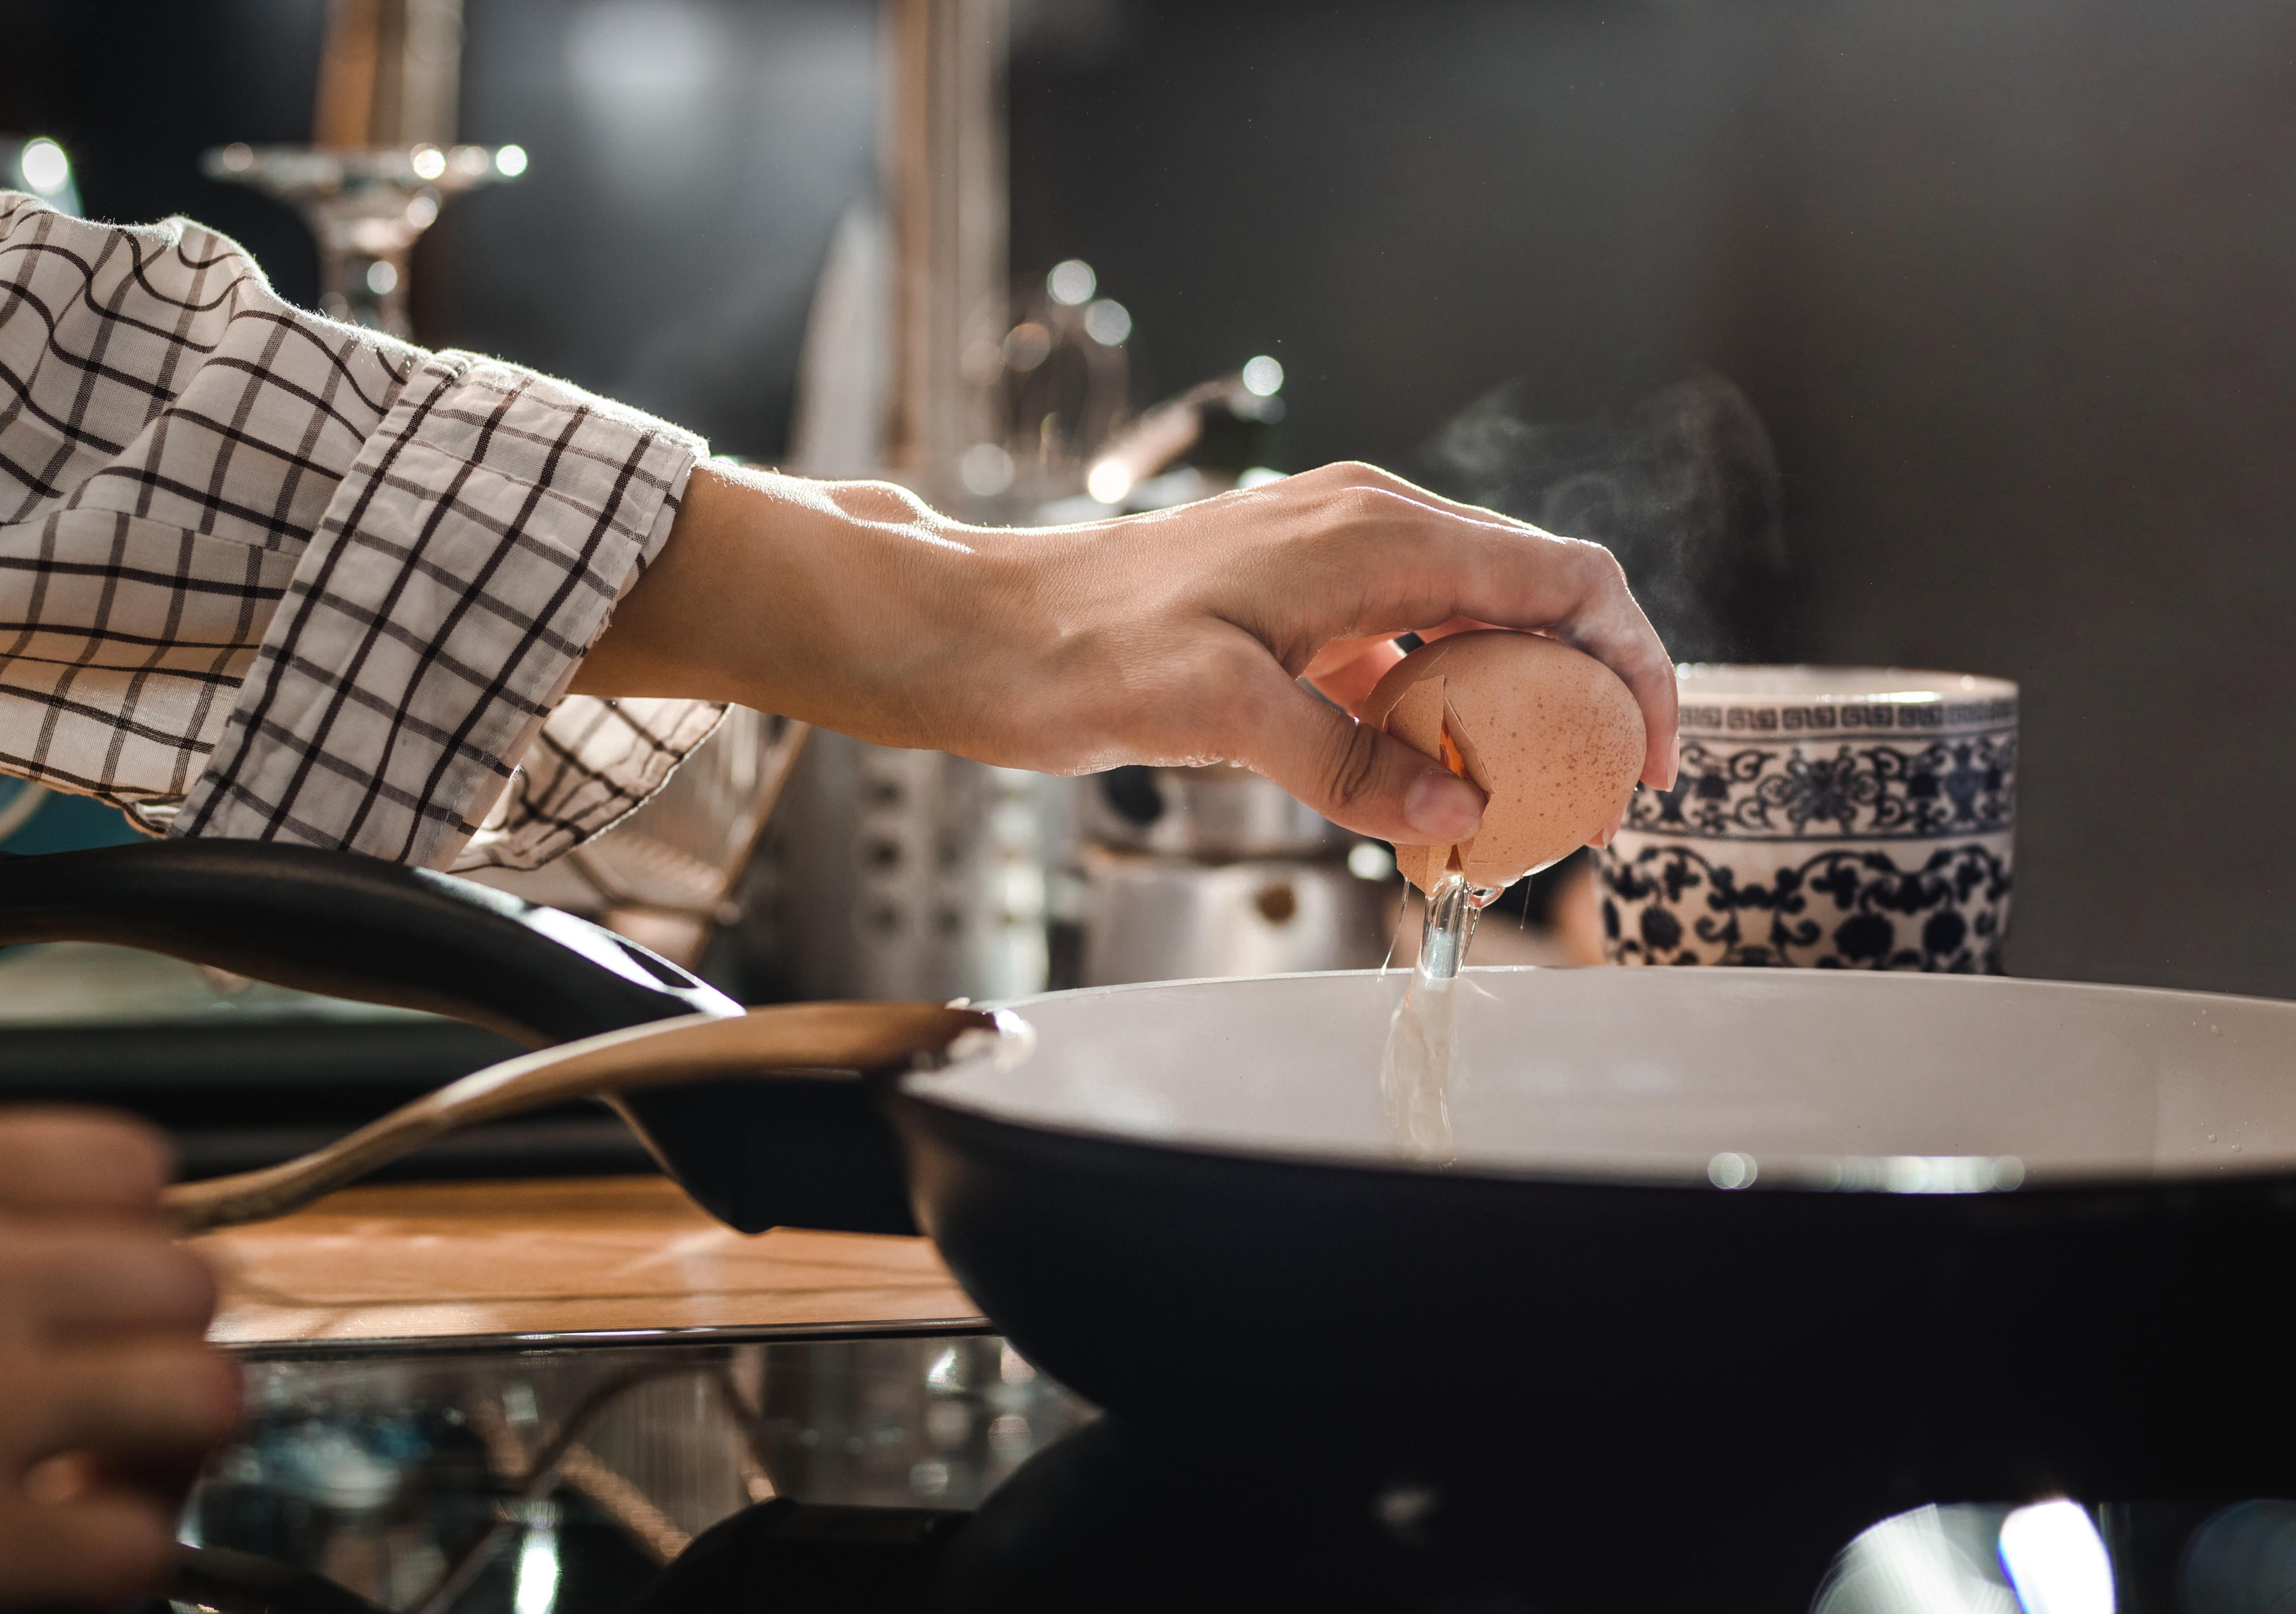 Close up of unrecognizable woman cracking an egg for breakfast while putting it in a frying pan.